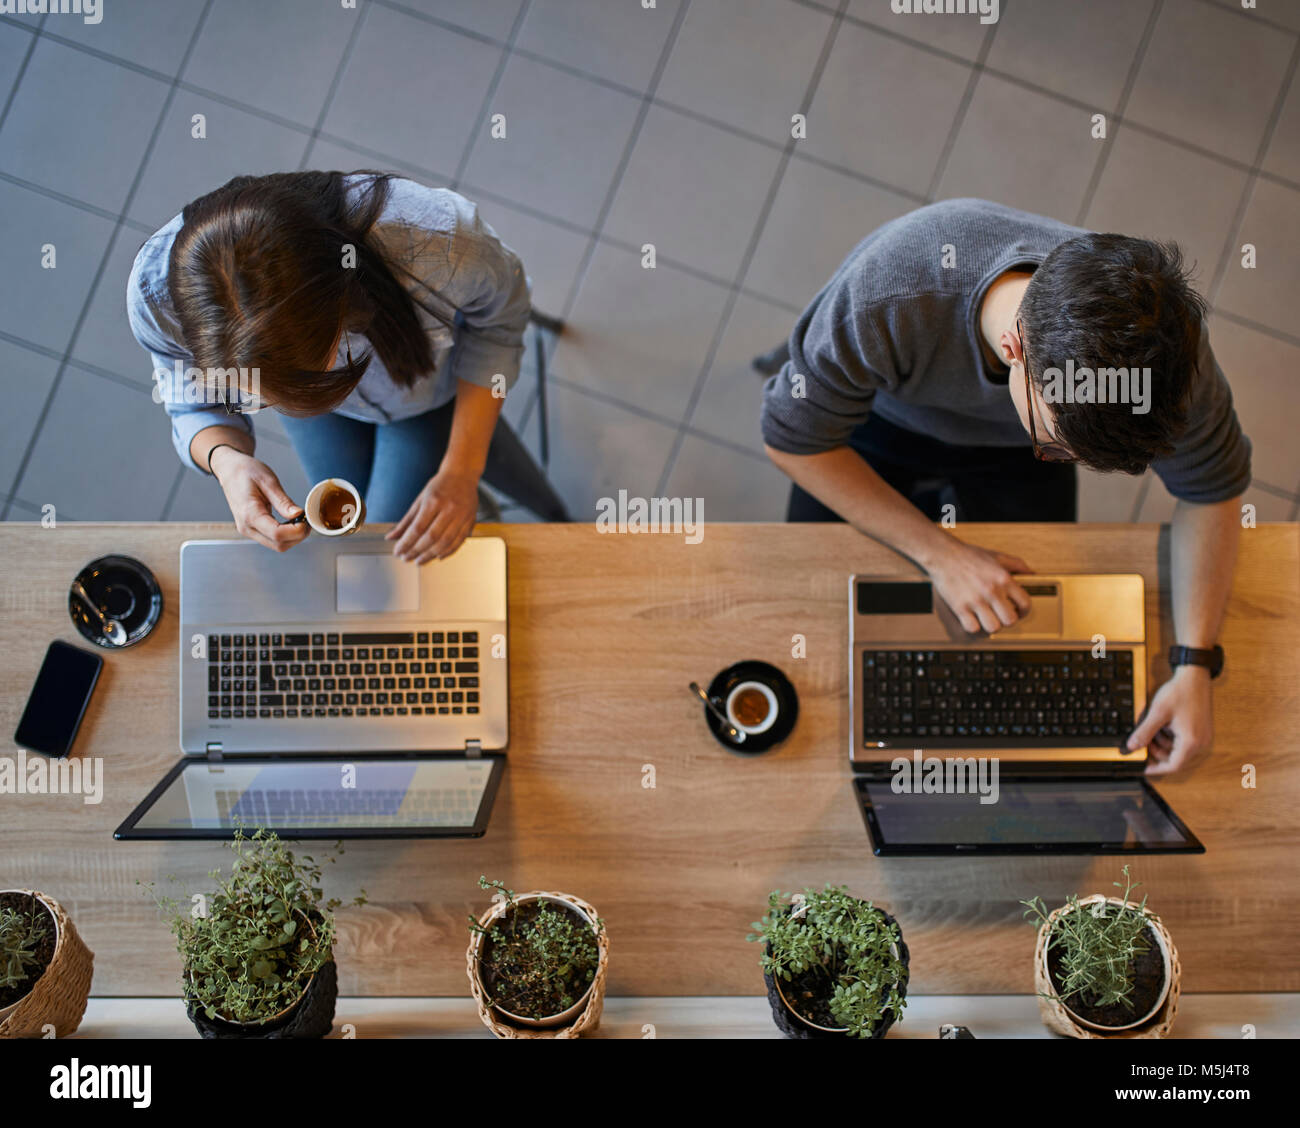 Top view of young woman and man in a cafe using laptops - Stock Image